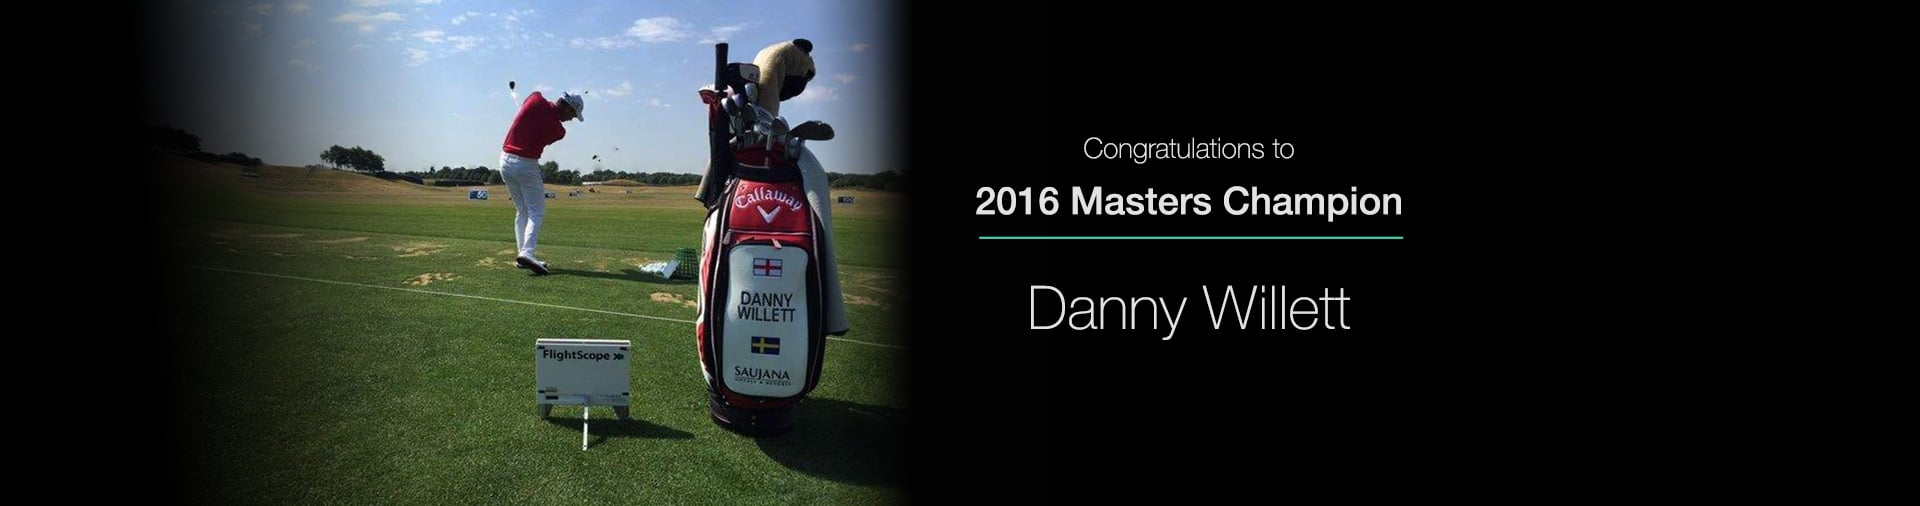 Banner photo showing FlightScope congratulating FlightScope user Danny Willett for being named the 2016 Masters Champion.